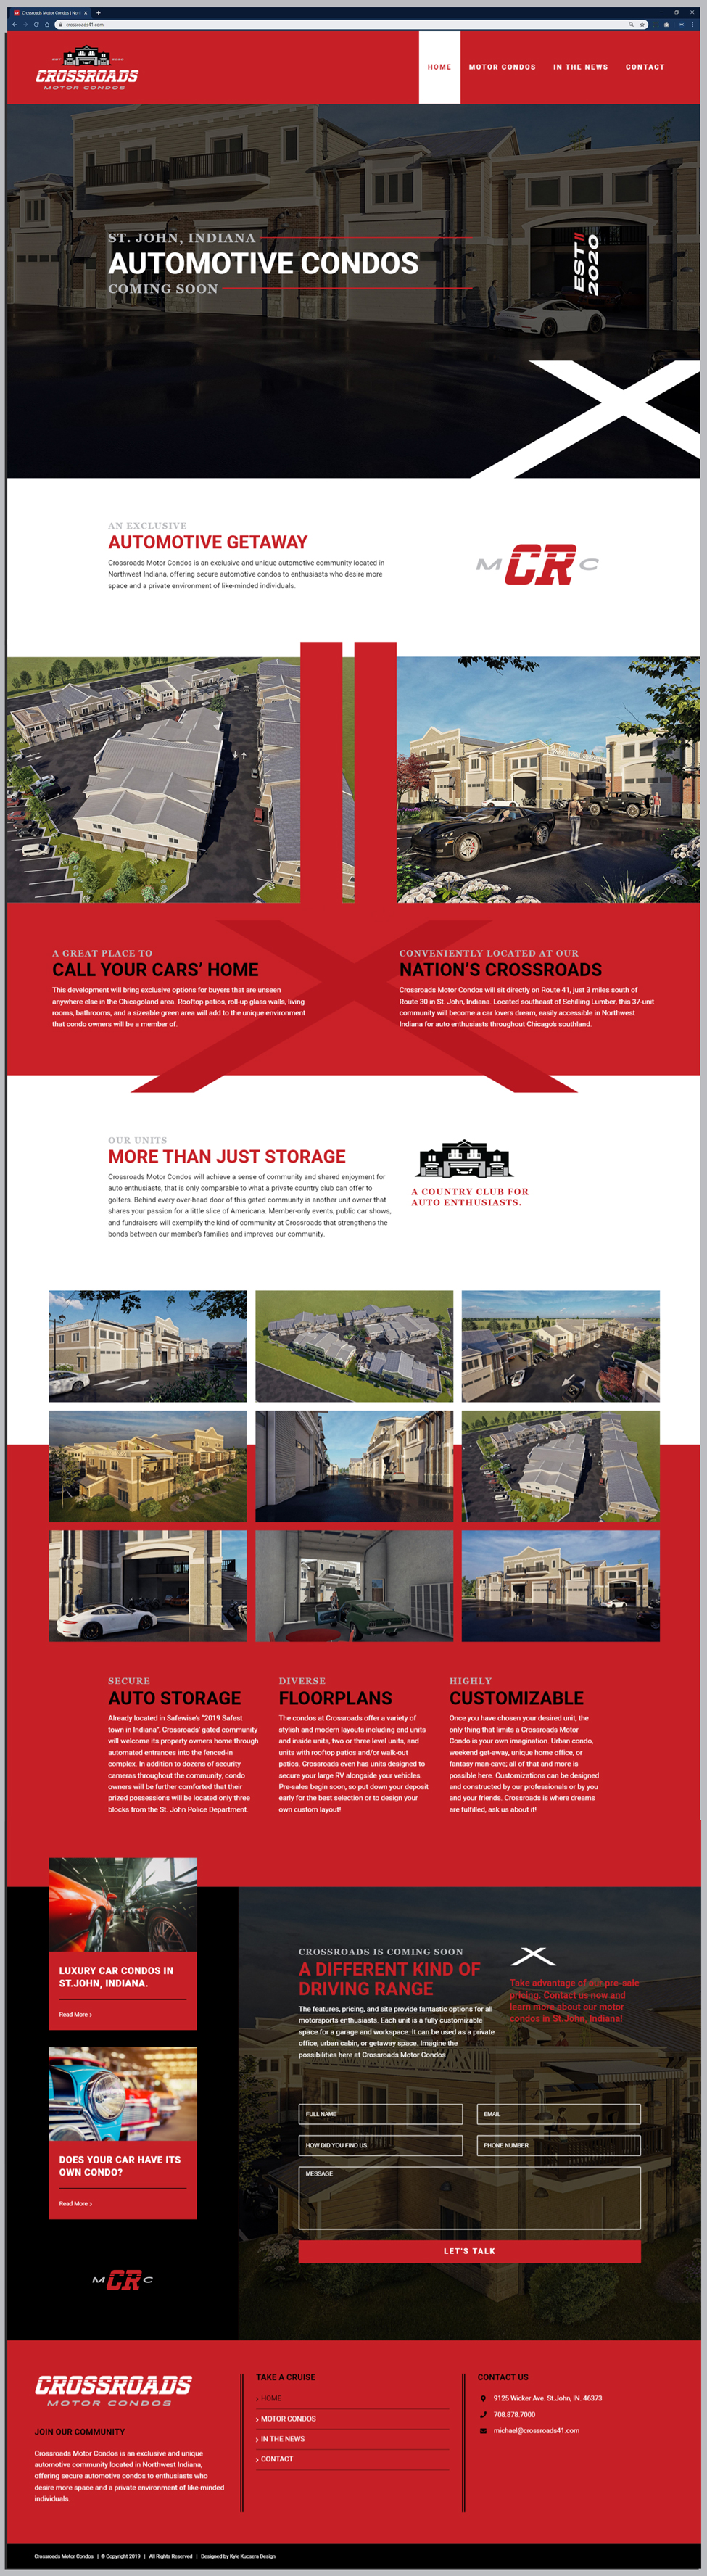 Web Design layout for Crossroads Motor Condos in St. John, Indiana